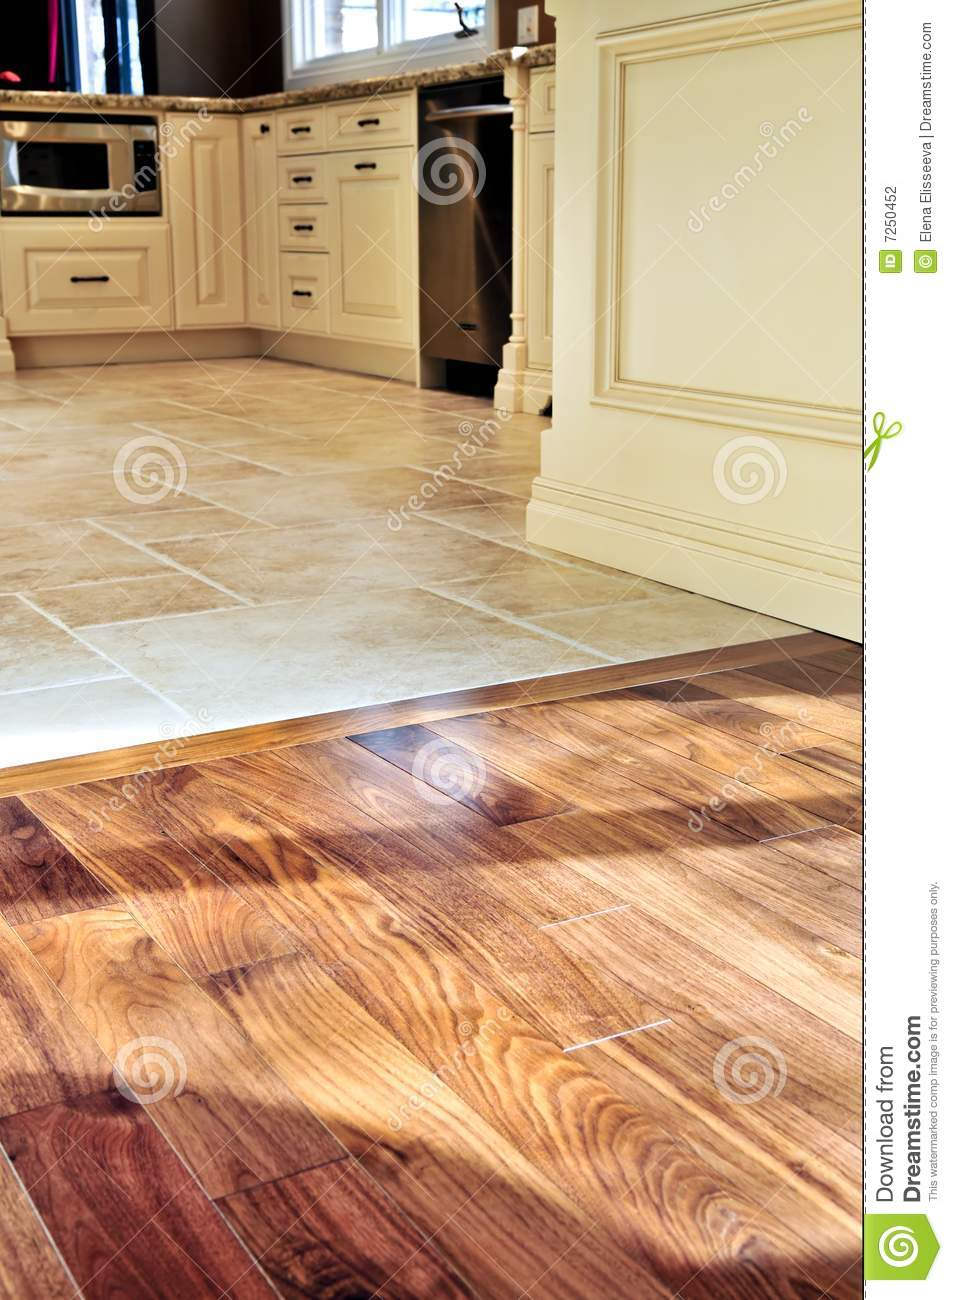 Which Floor Or What Floor Of Hardwood And Tile Floor Stock Photo Image Of Dining 7250452